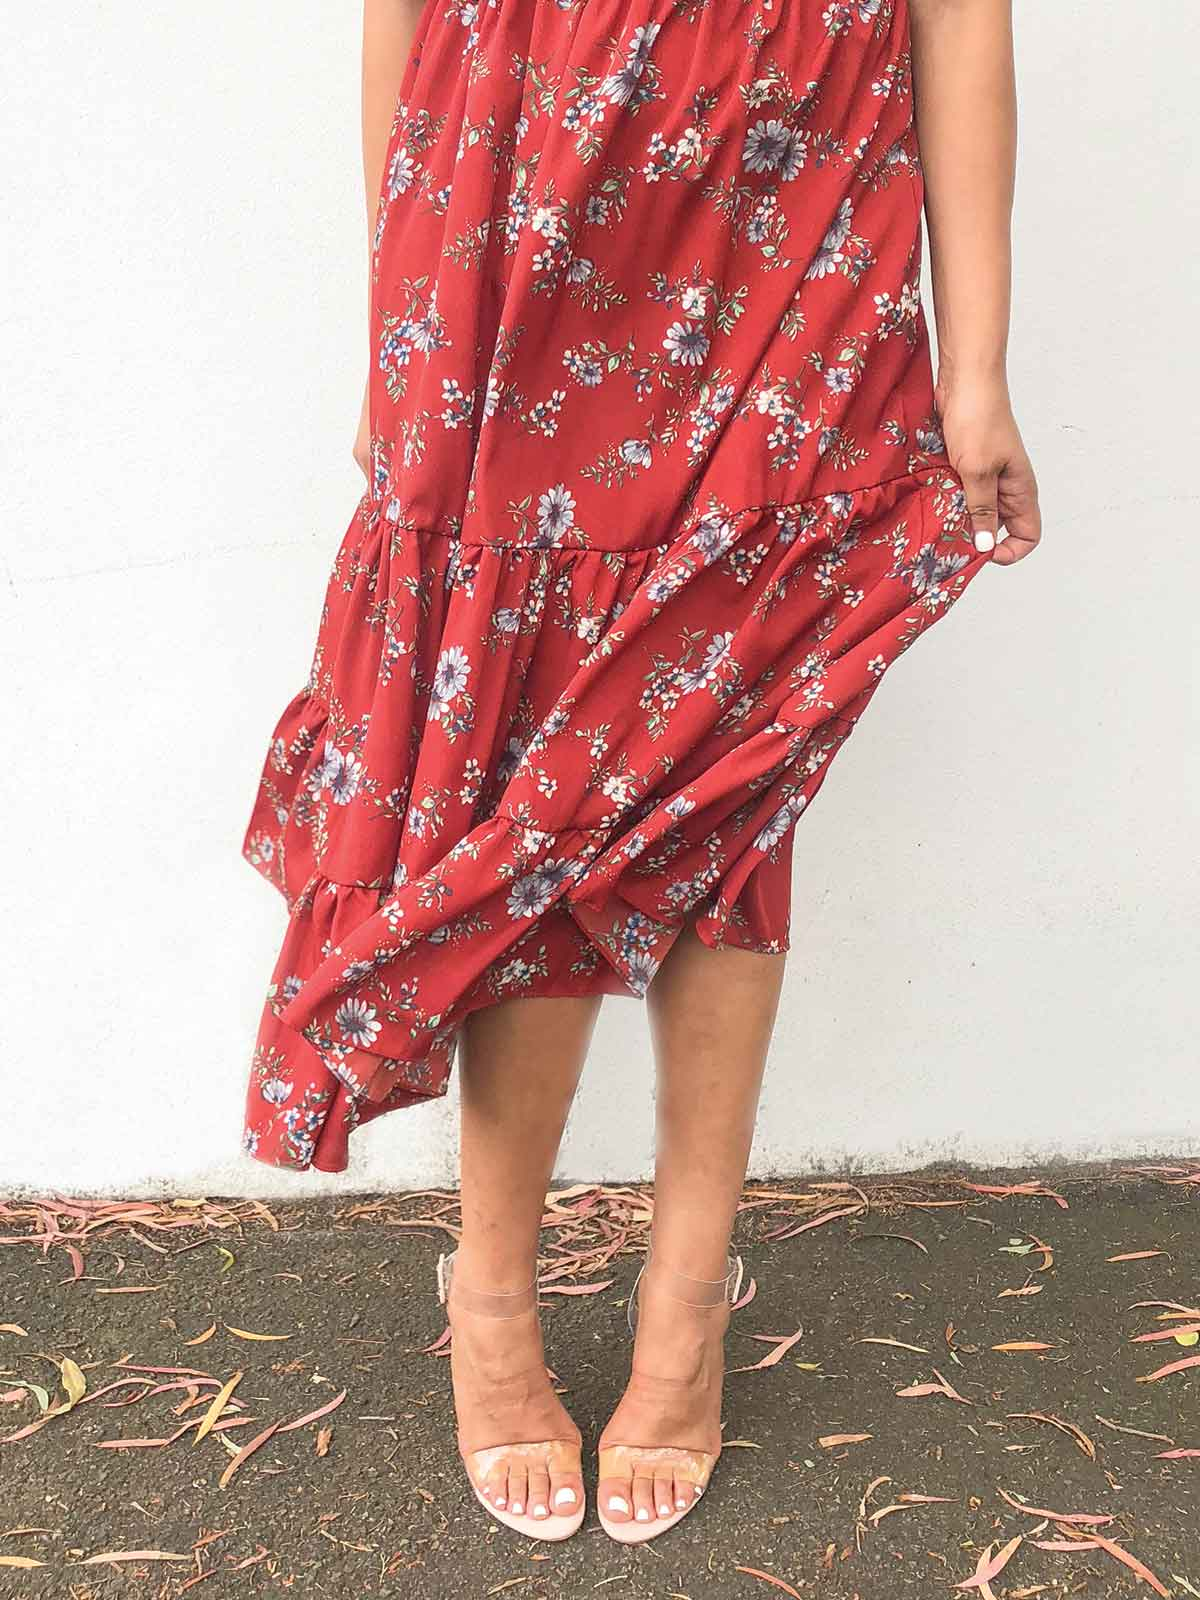 PENNY LANE FLORAL DRESS